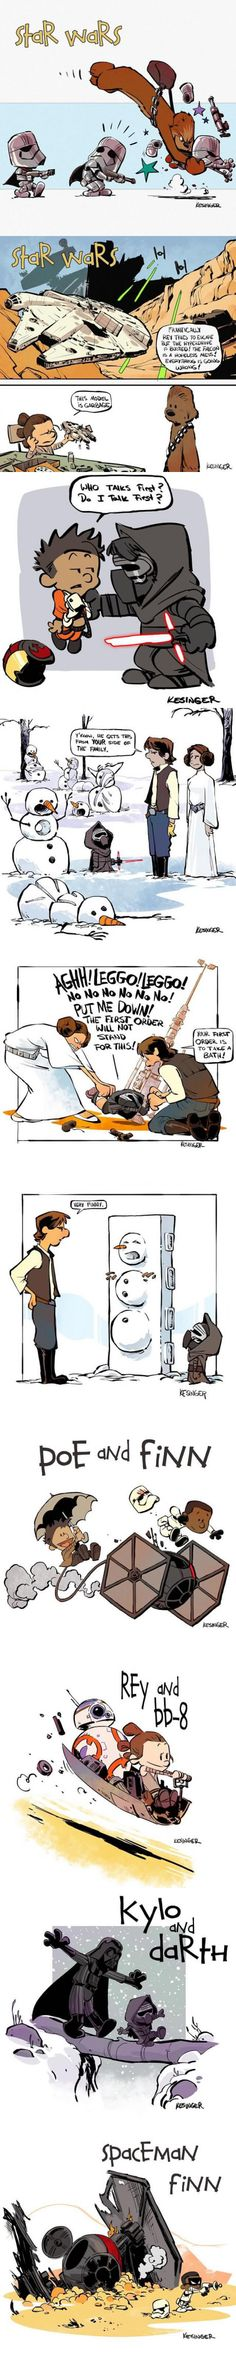 Calvin & Hobbes style Star Wars: The Force Awakens